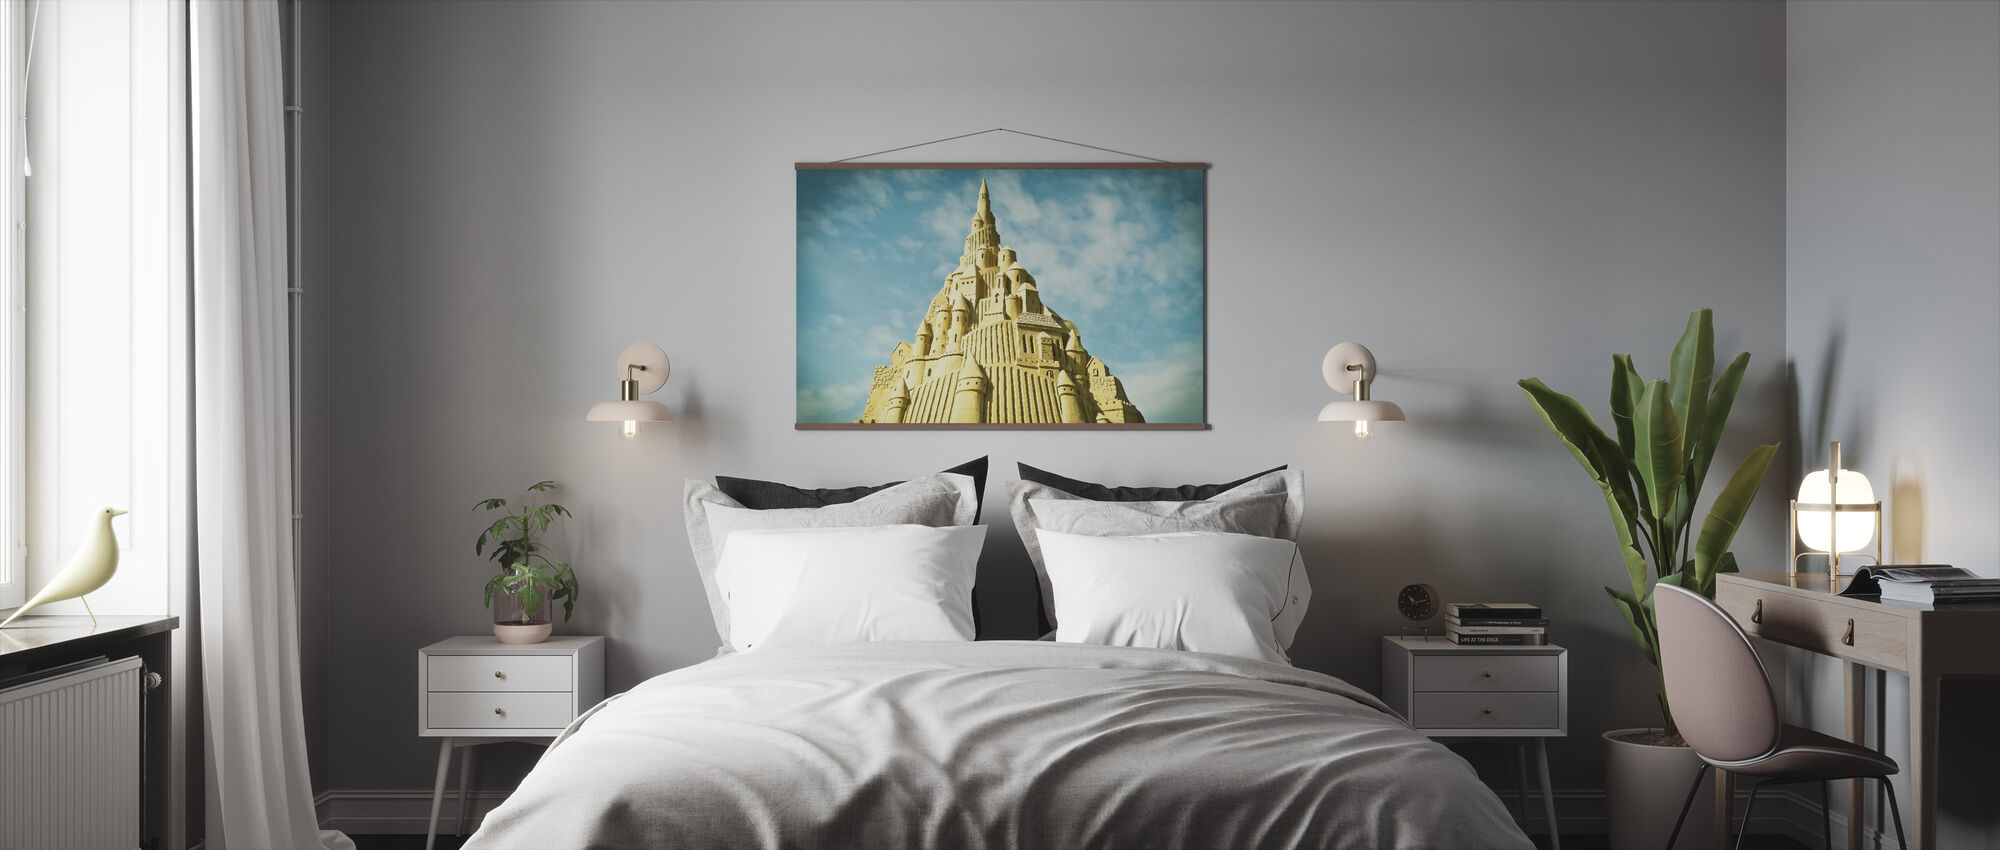 Sand Sculpture - Poster - Bedroom